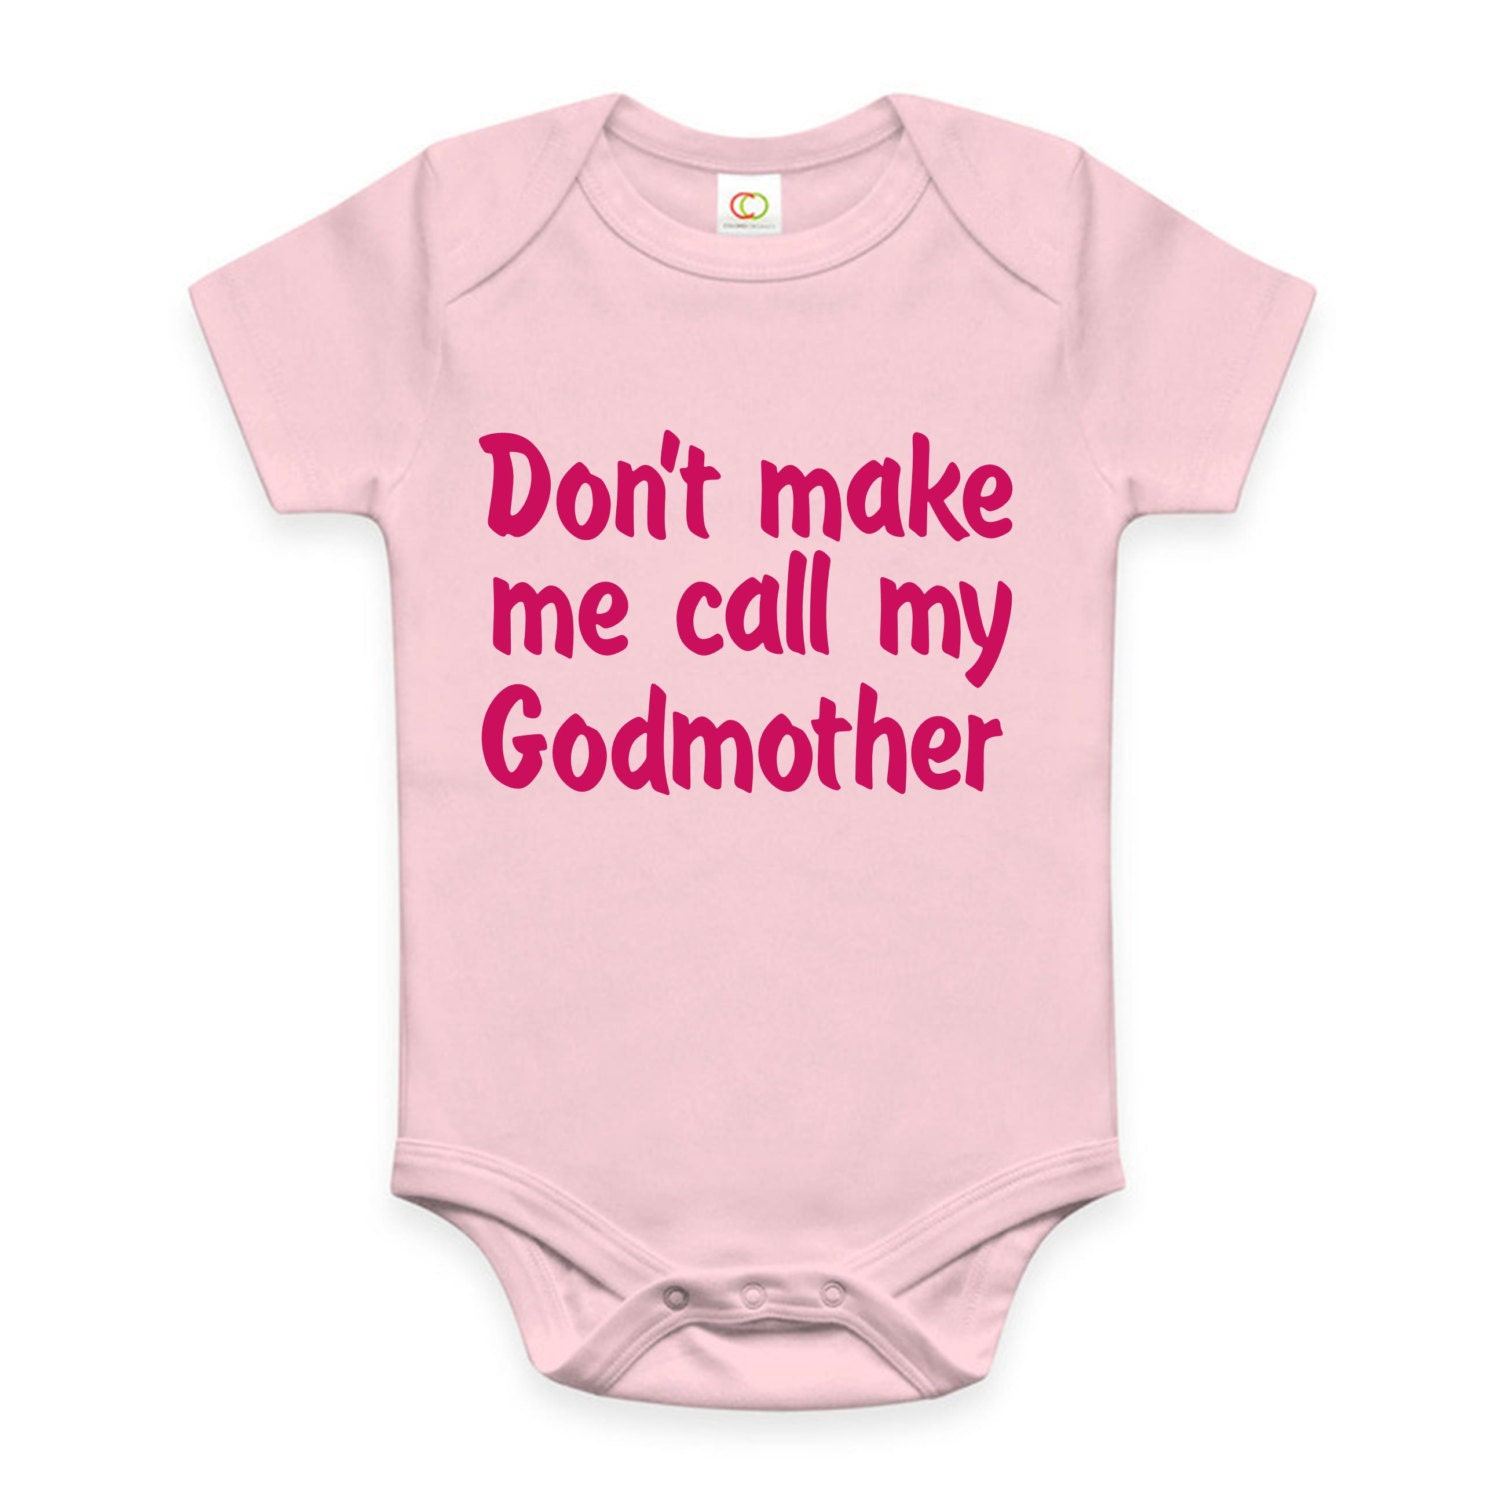 Don't make me call my Godmother or Godfather funny baby